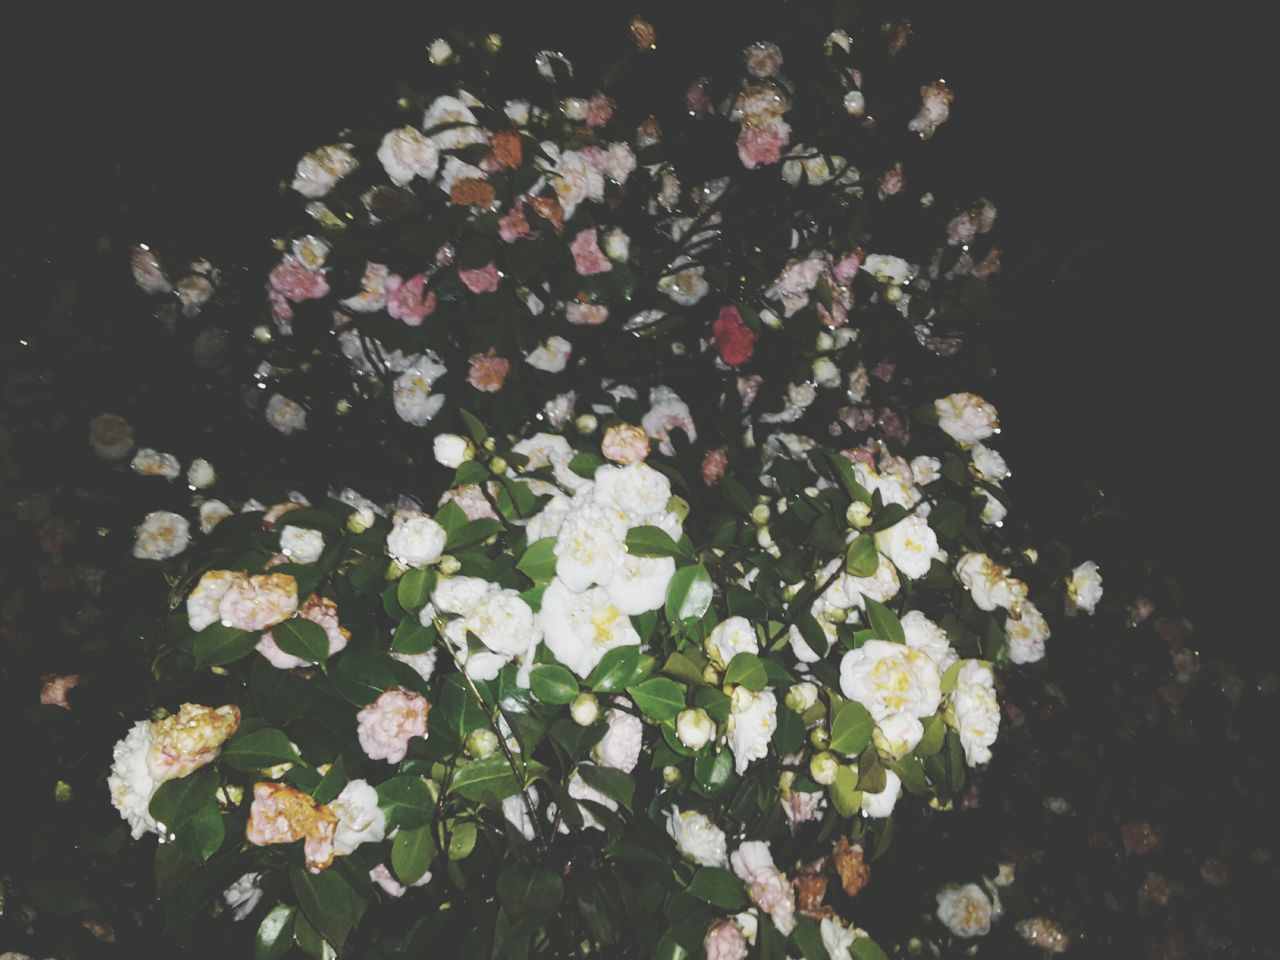 Flower Nature Beauty In Nature Growth Freshness Fragility Petal Plant Flower Head No People Outdoors Day Camellia Beauty In Nature Plant Growth Springtime Nature Blossom Branch